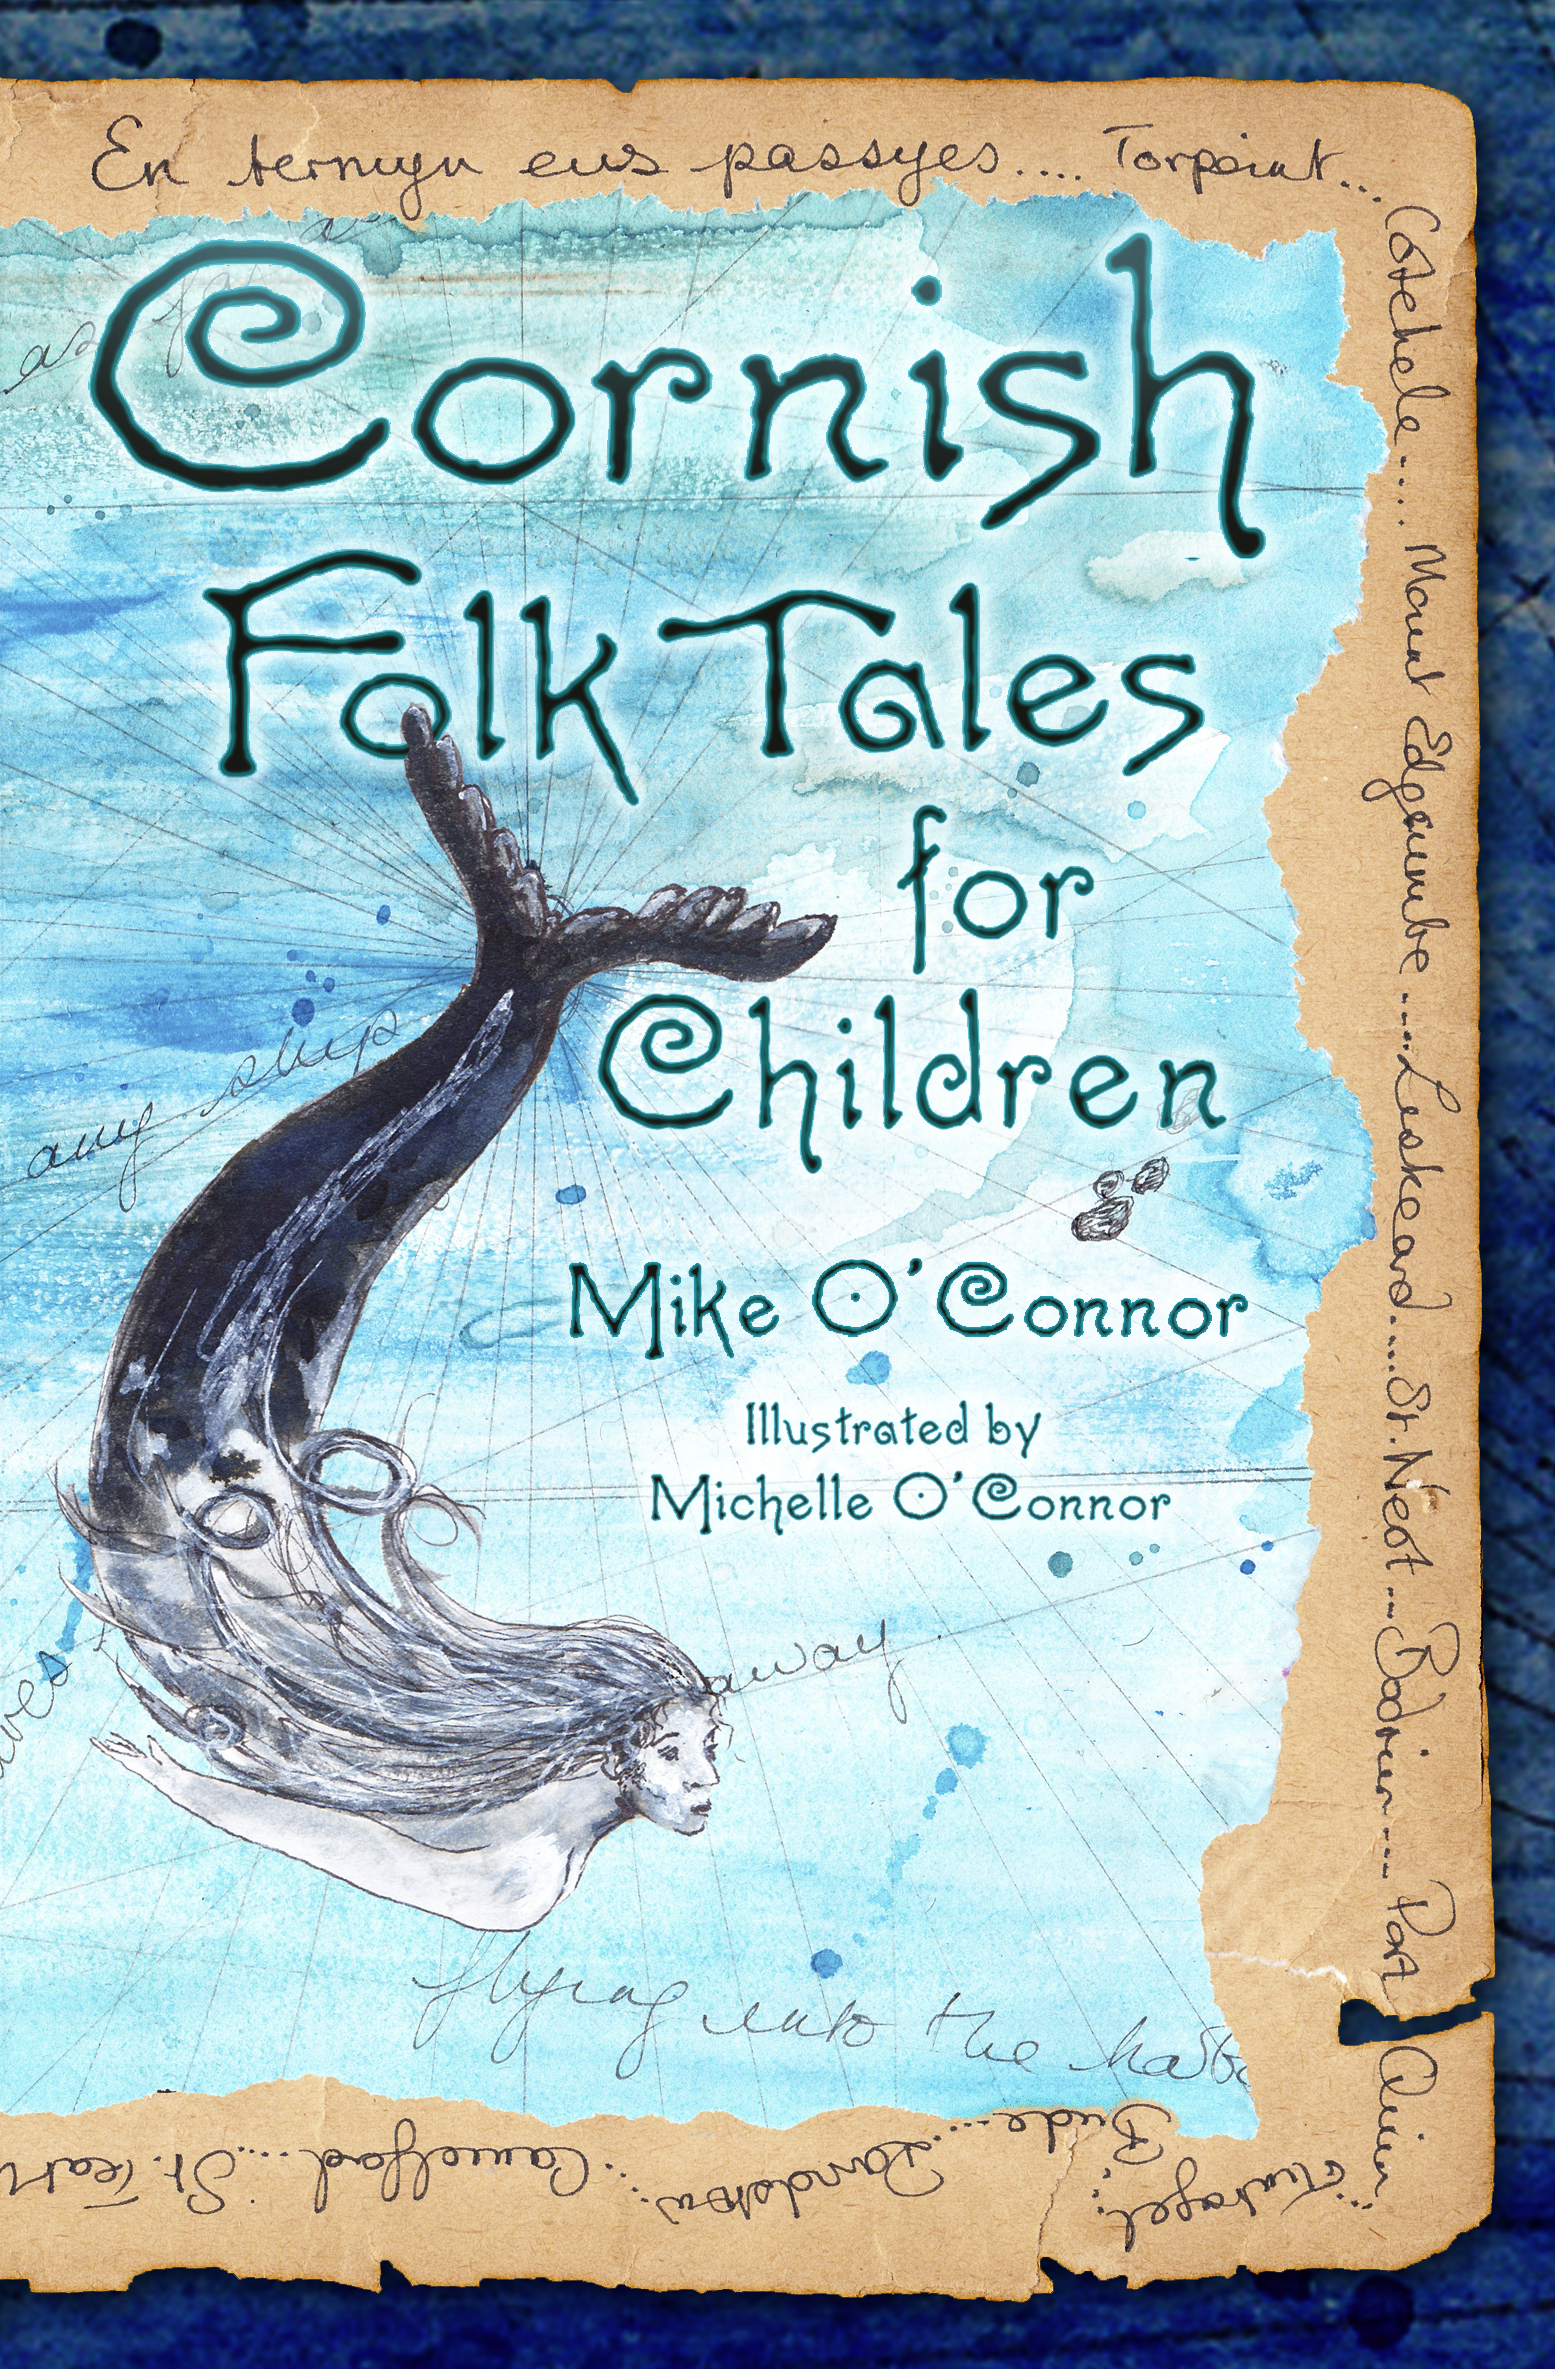 Mike Connor's new book